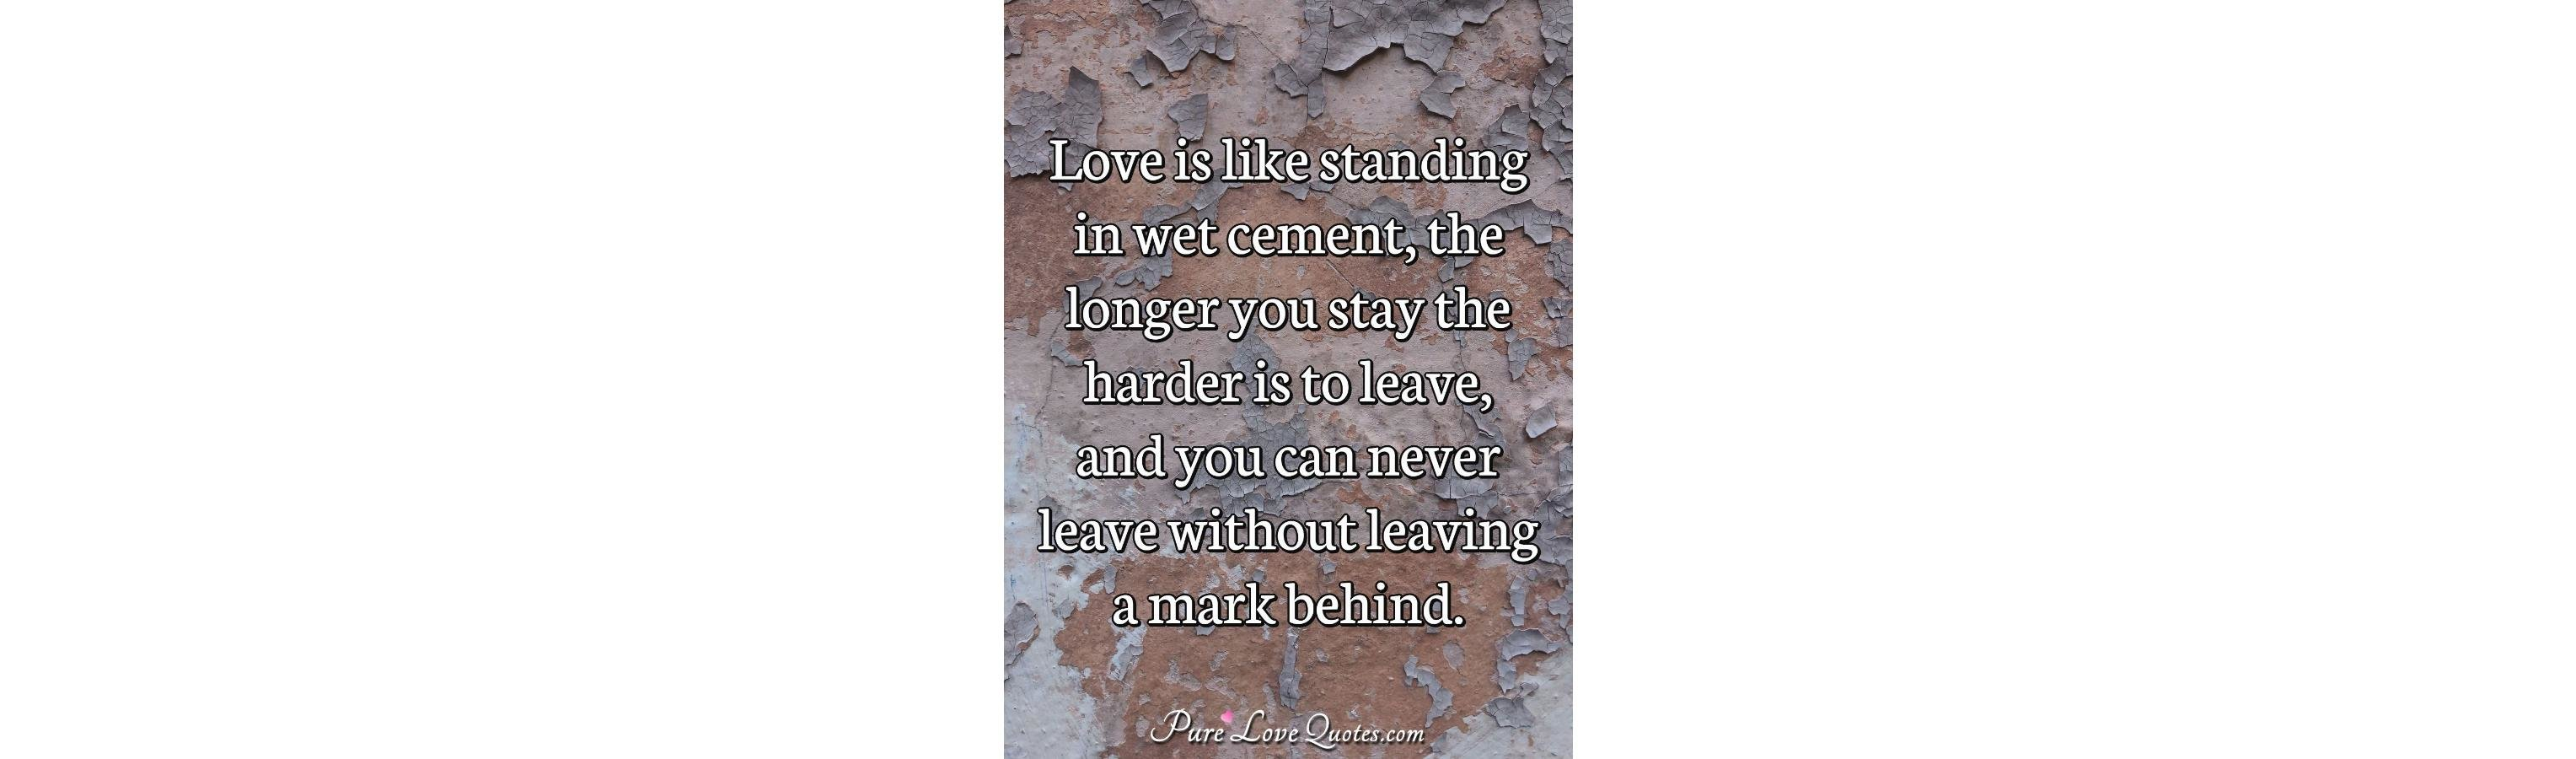 Love Is Like Standing In Wet Cement The Longer You Stay The Harder